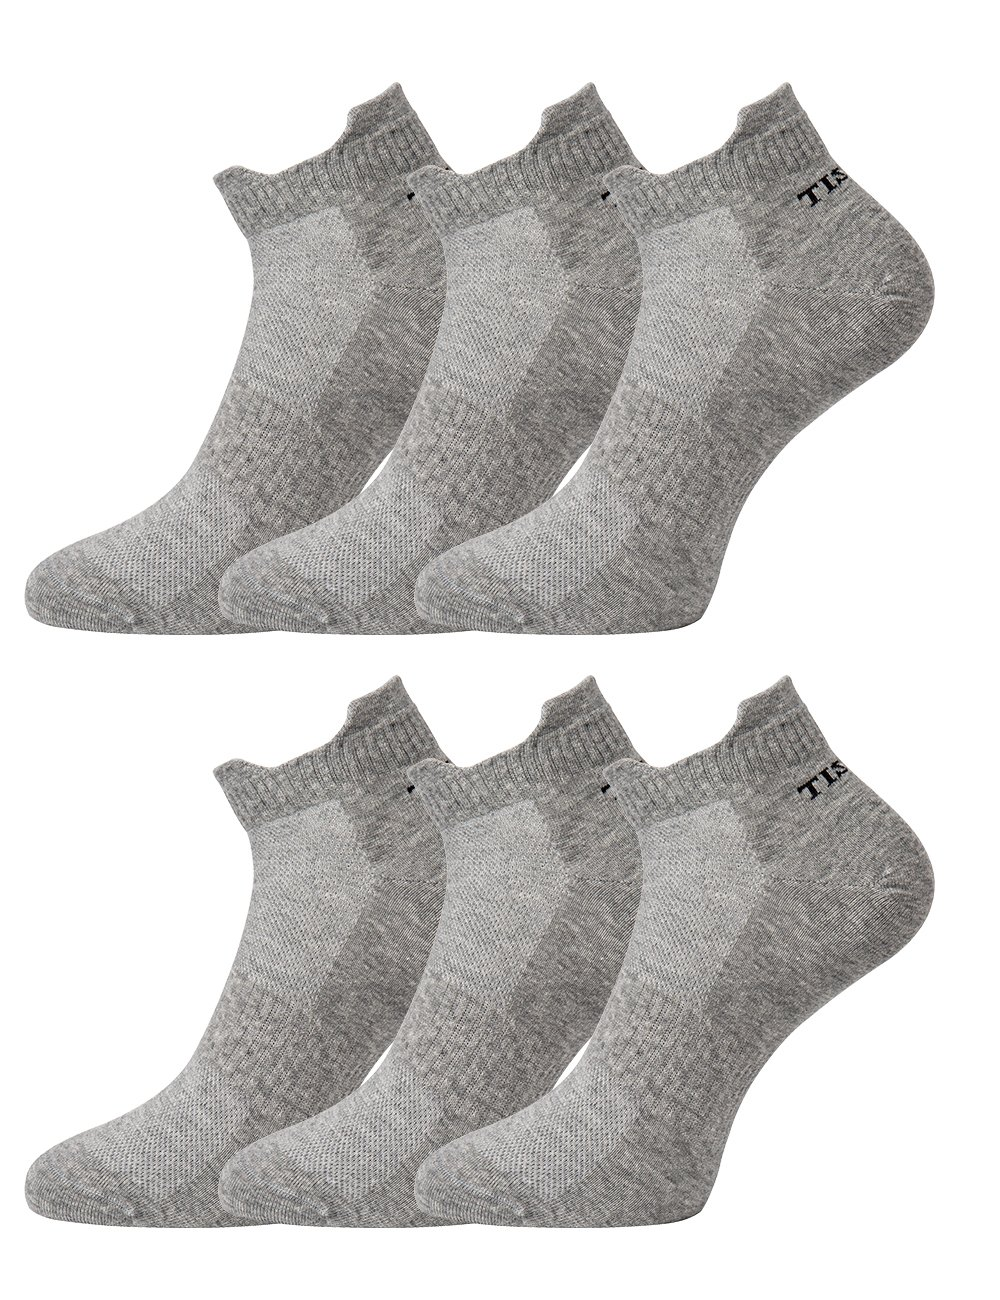 Tisoks 6 Pairs Grey Mens and Womens Titanium Anti Odor Antifungal Sports Ankle Socks Antibacterial for Athletes Feet by Tisoks